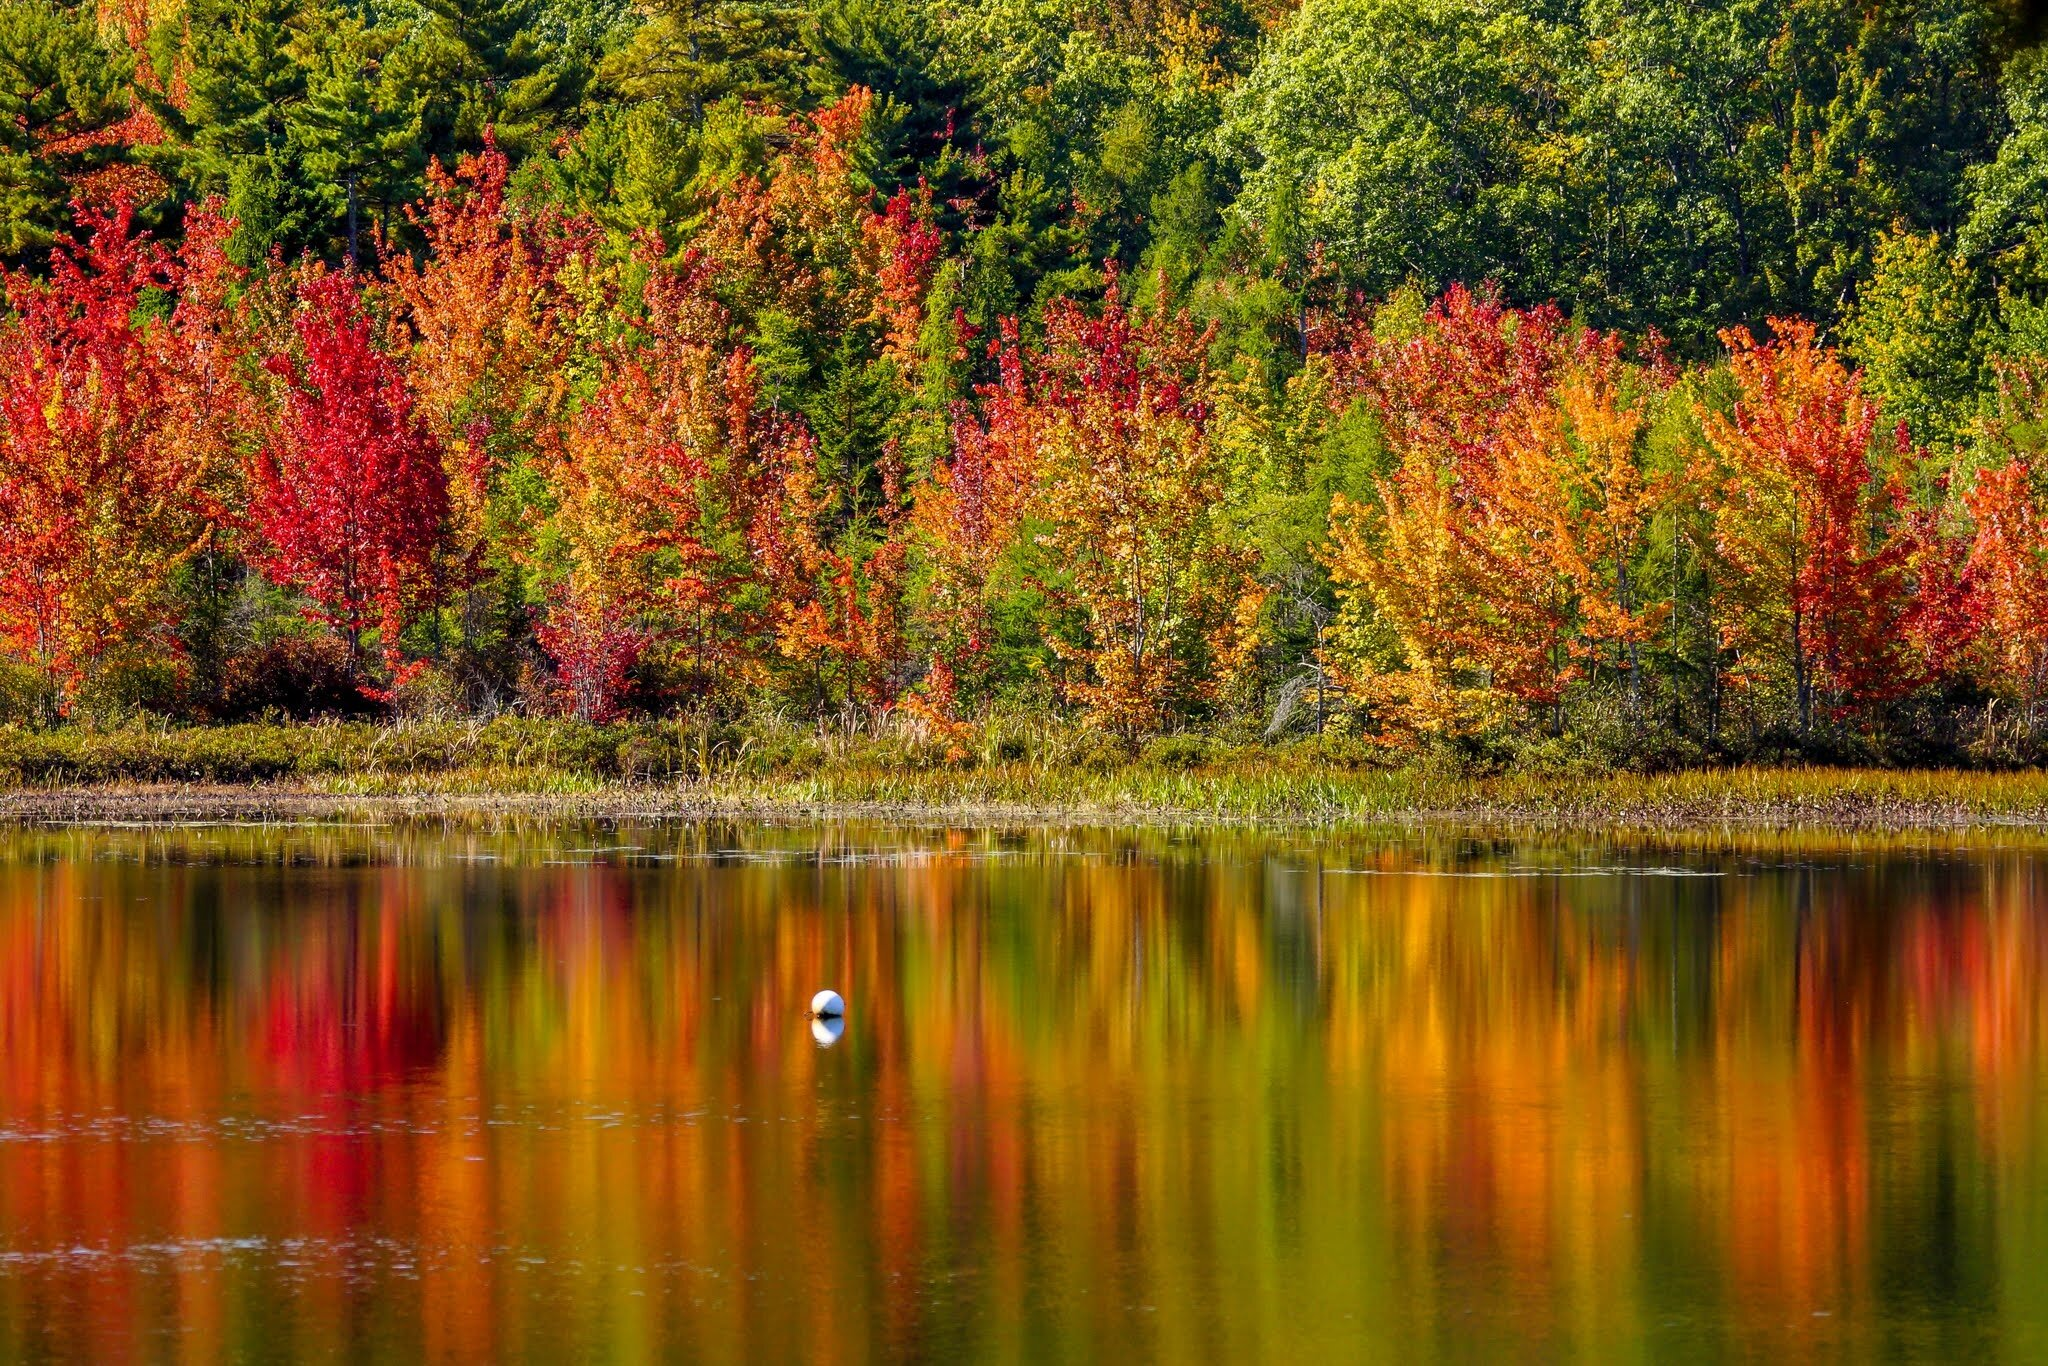 Fall views in Midcoast Maine. Photo by PJ Walter photography.